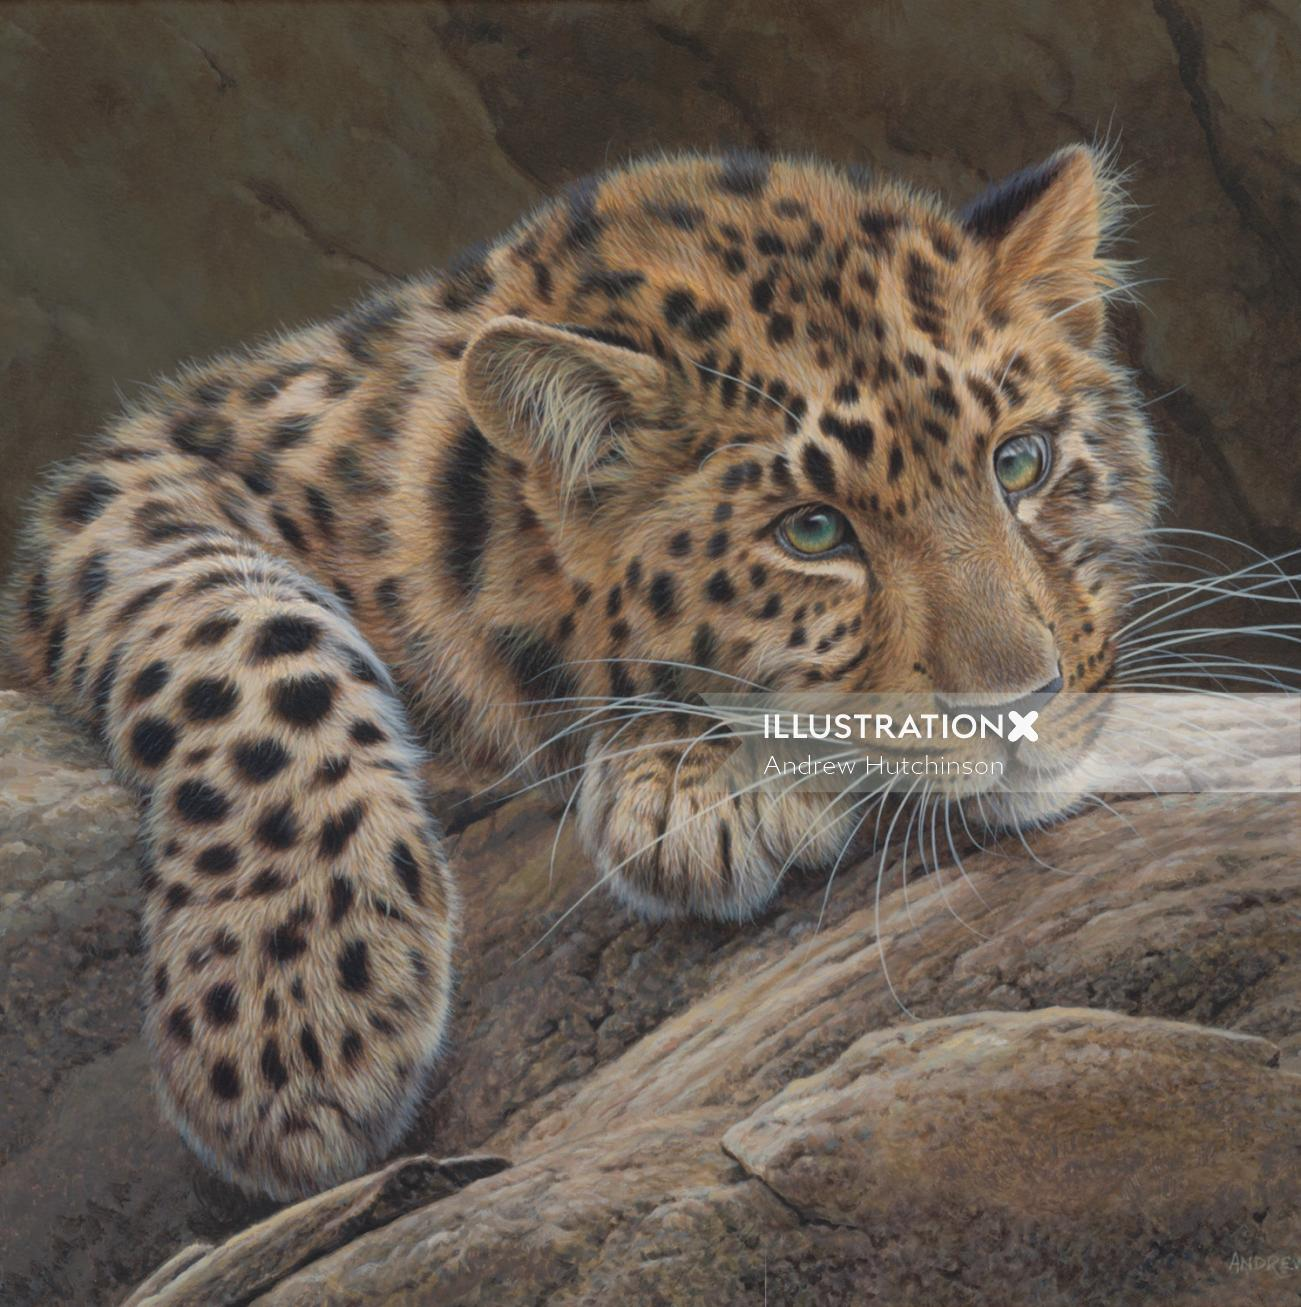 Acrylics cheetah painting  by Andrew Hutchinson